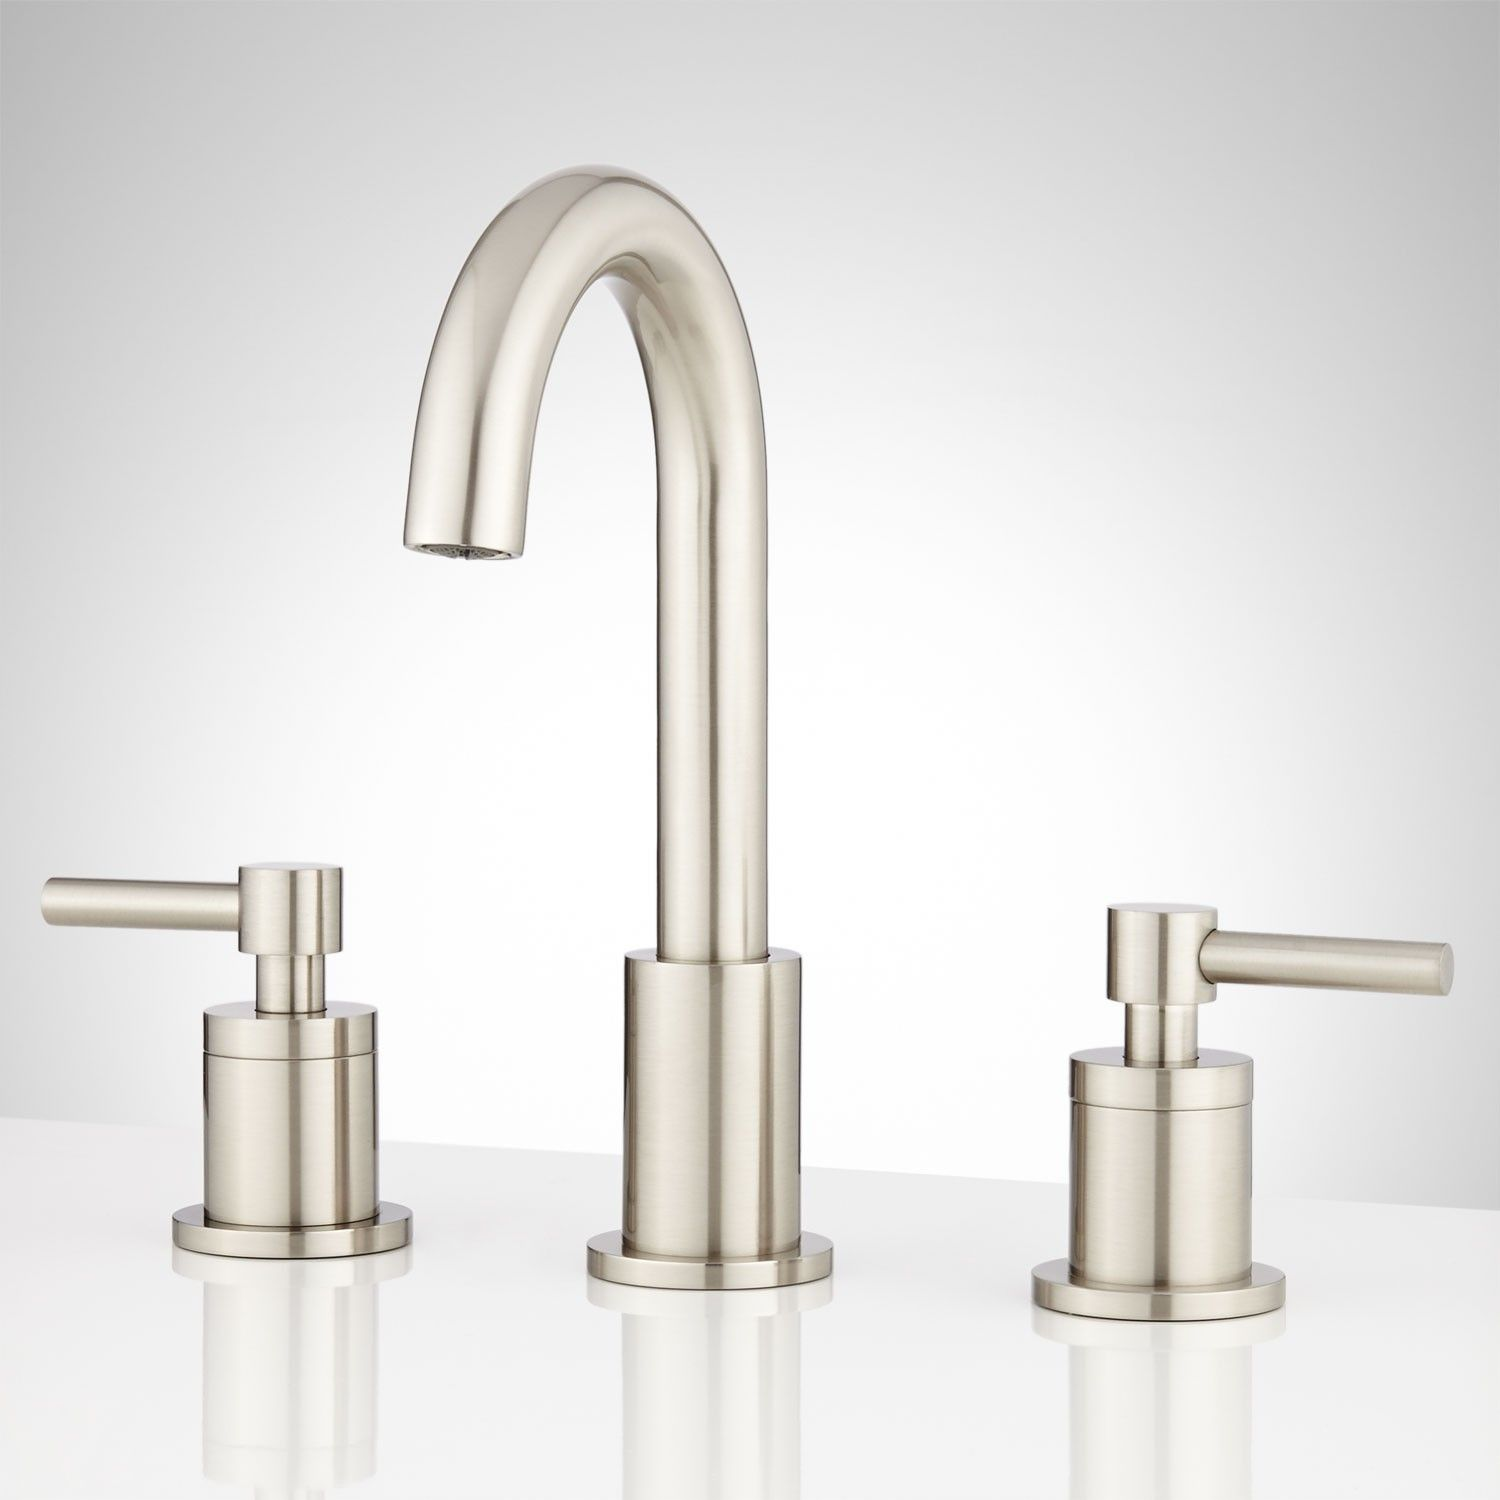 Keating+Widespread+Bathroom+Faucet+with+Lever+Handles | bathroom ...